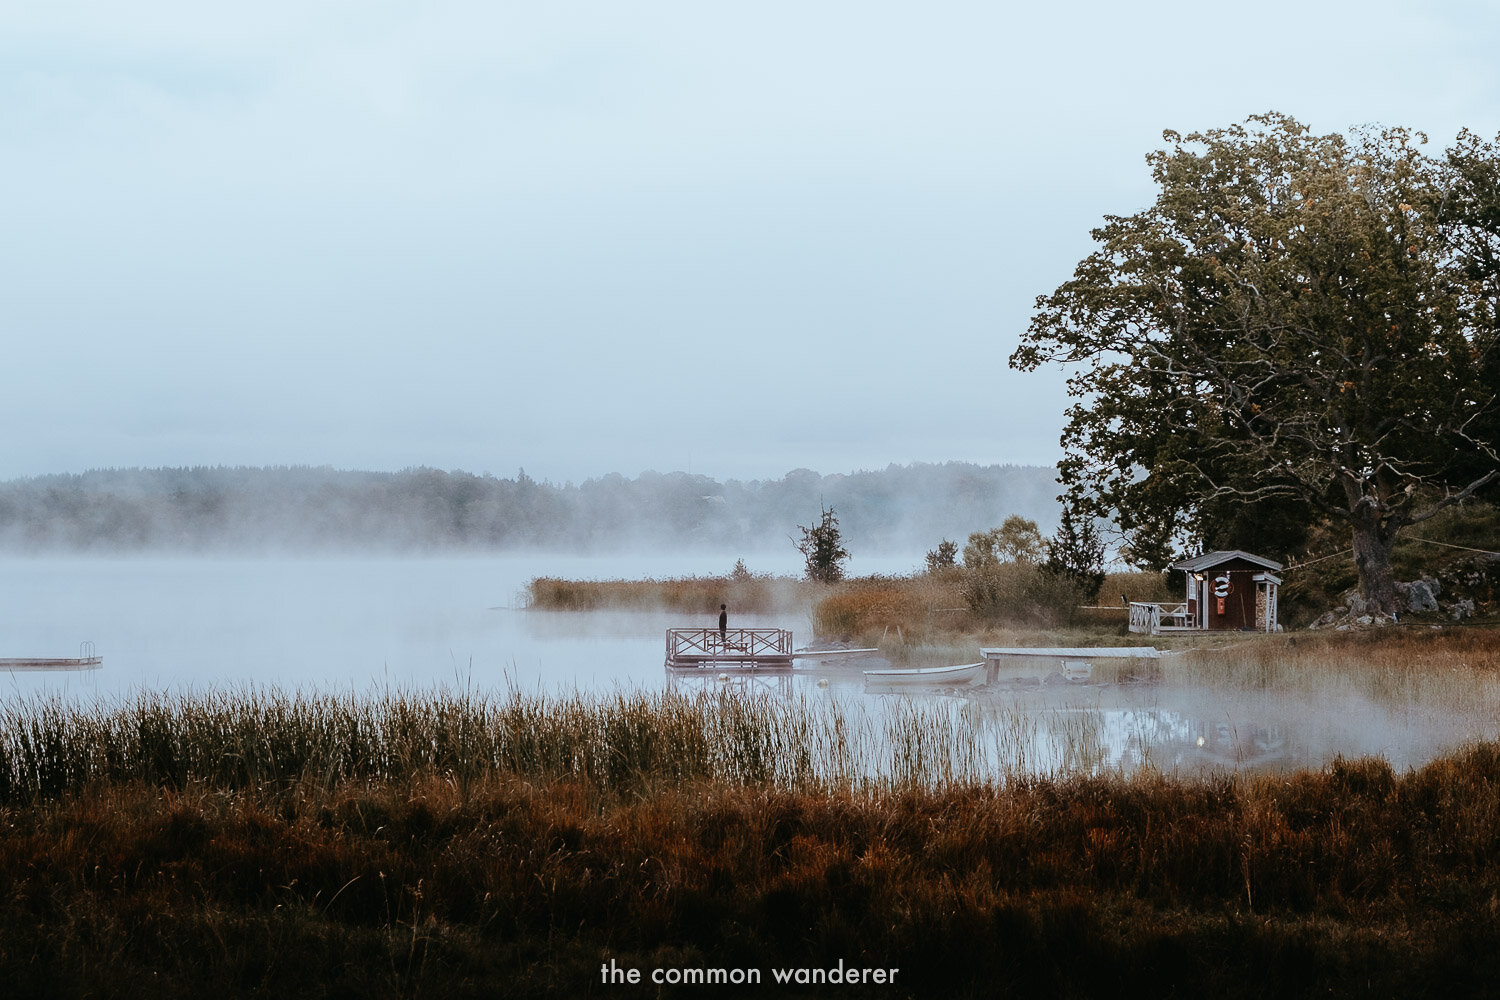 The Common Wanderer monthly update - visiting Smaland, Sweden